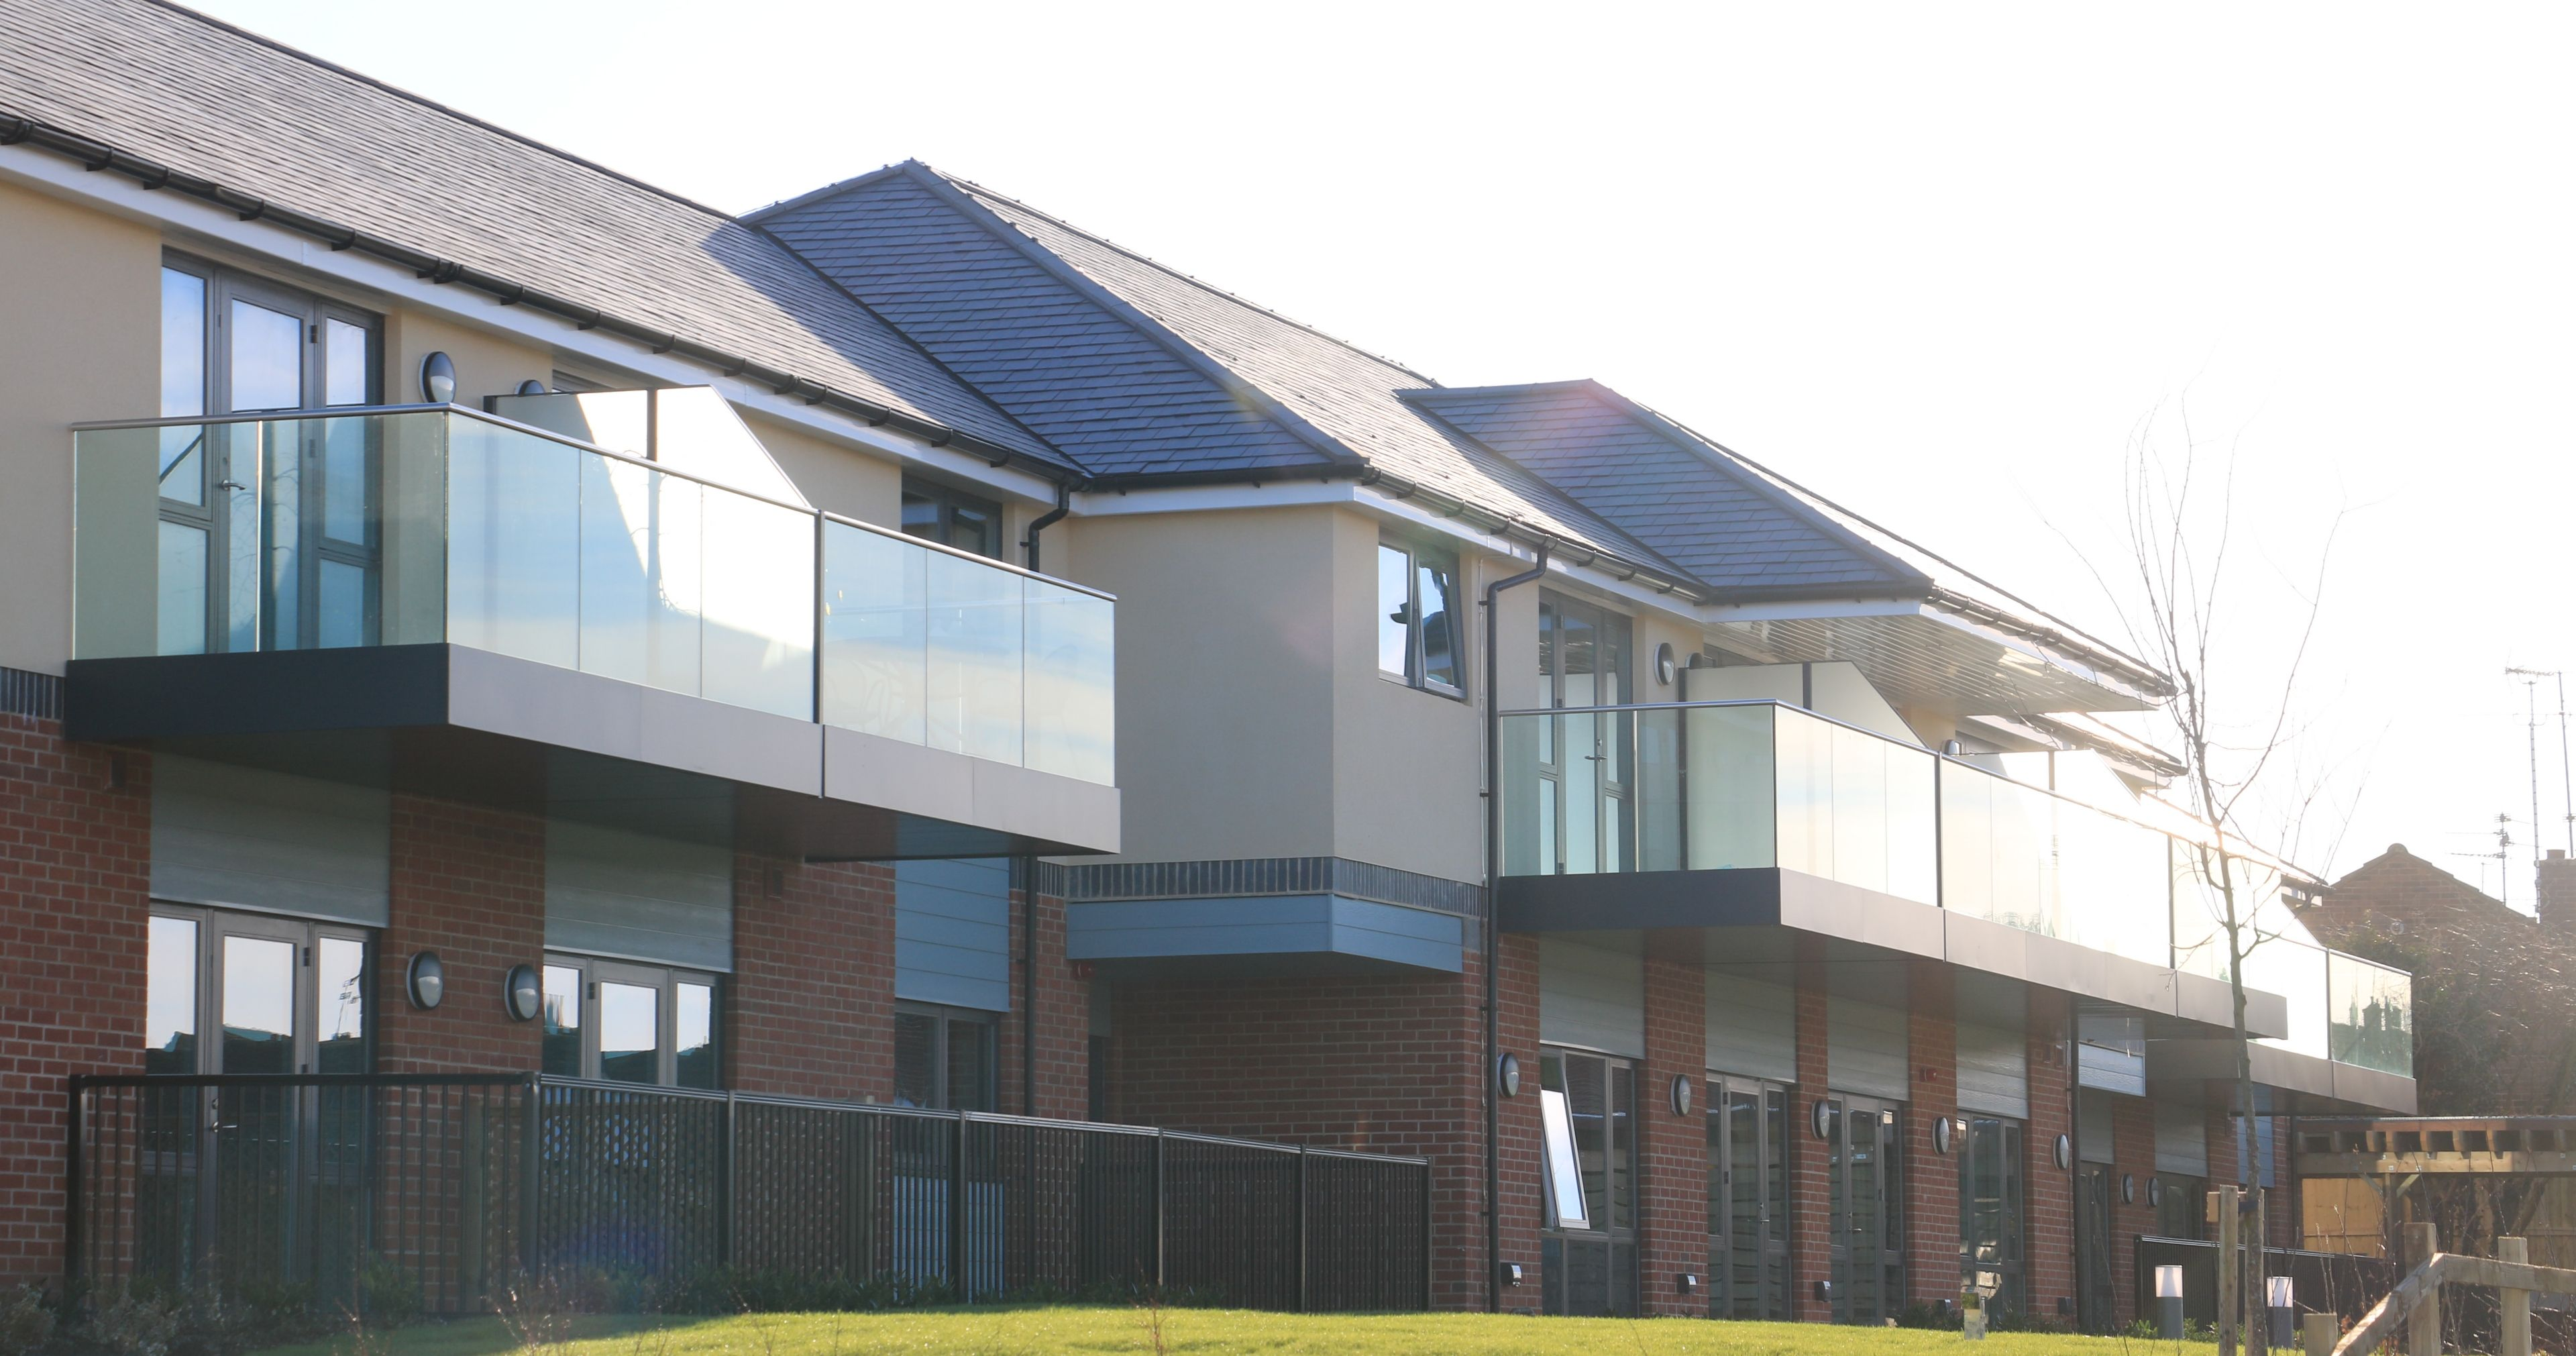 Fosters care home was a traditional build meaning an